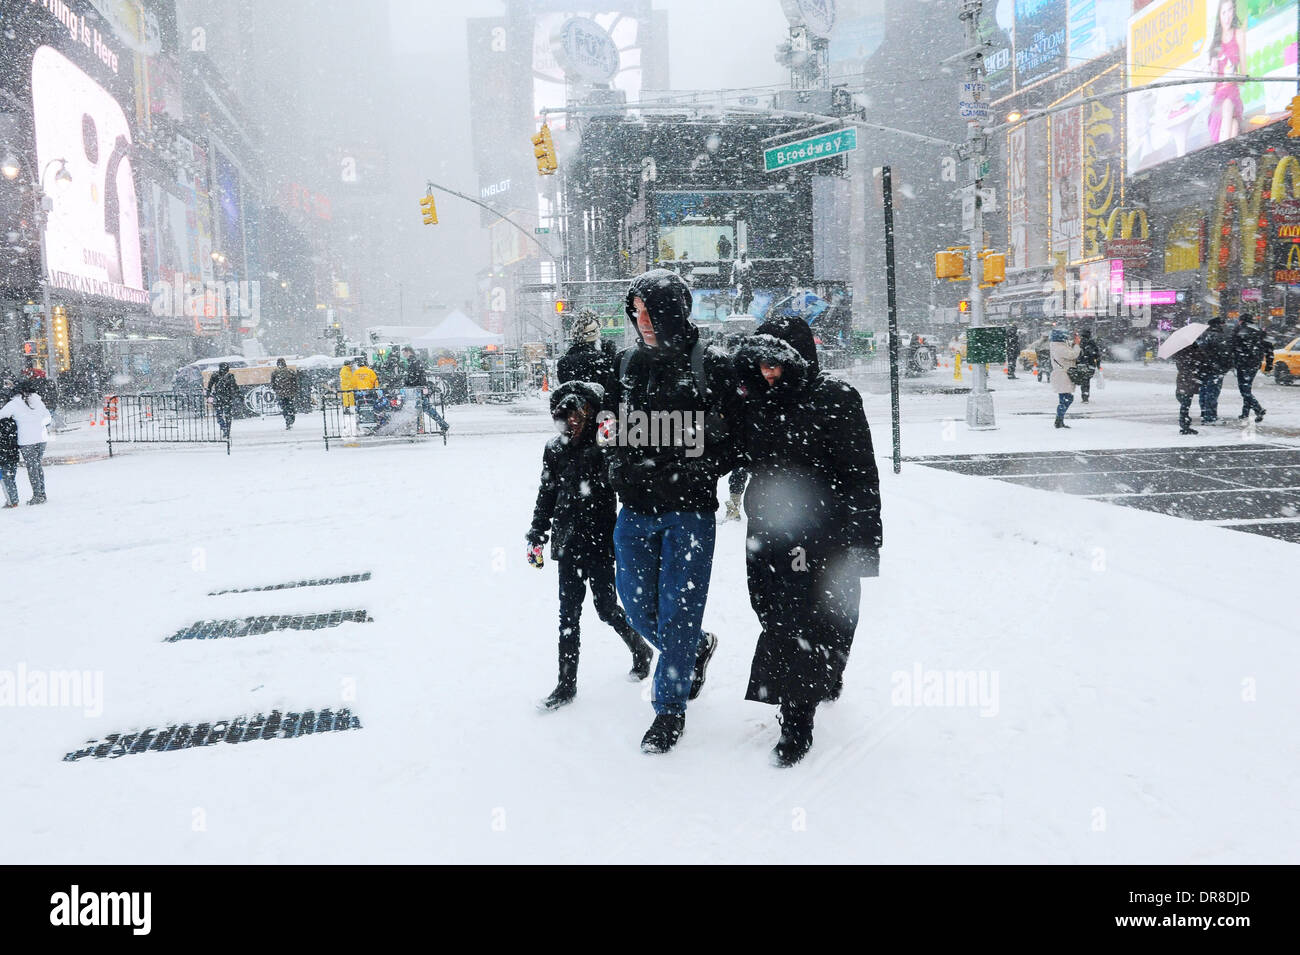 New York, NY, USA. 21st Jan, 2014. Pedestrians walk in snowstorm across the Times Square in New York City, the United Stock Photo